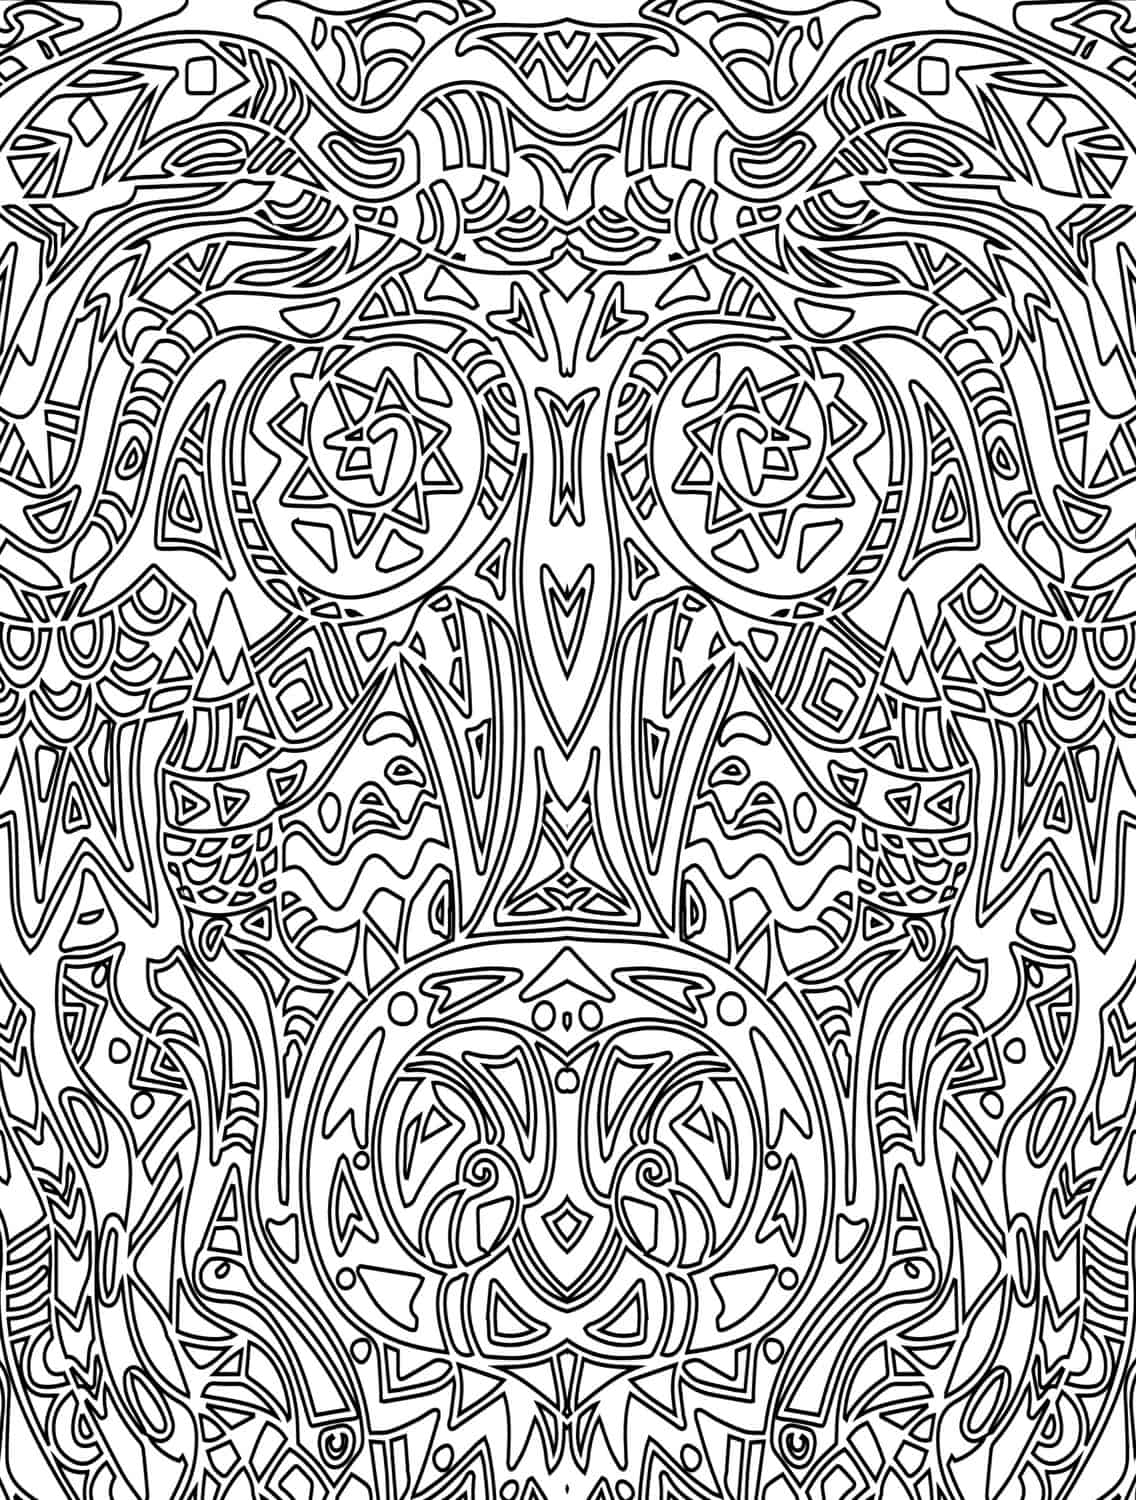 crazy coloring pages for adults - photo#29